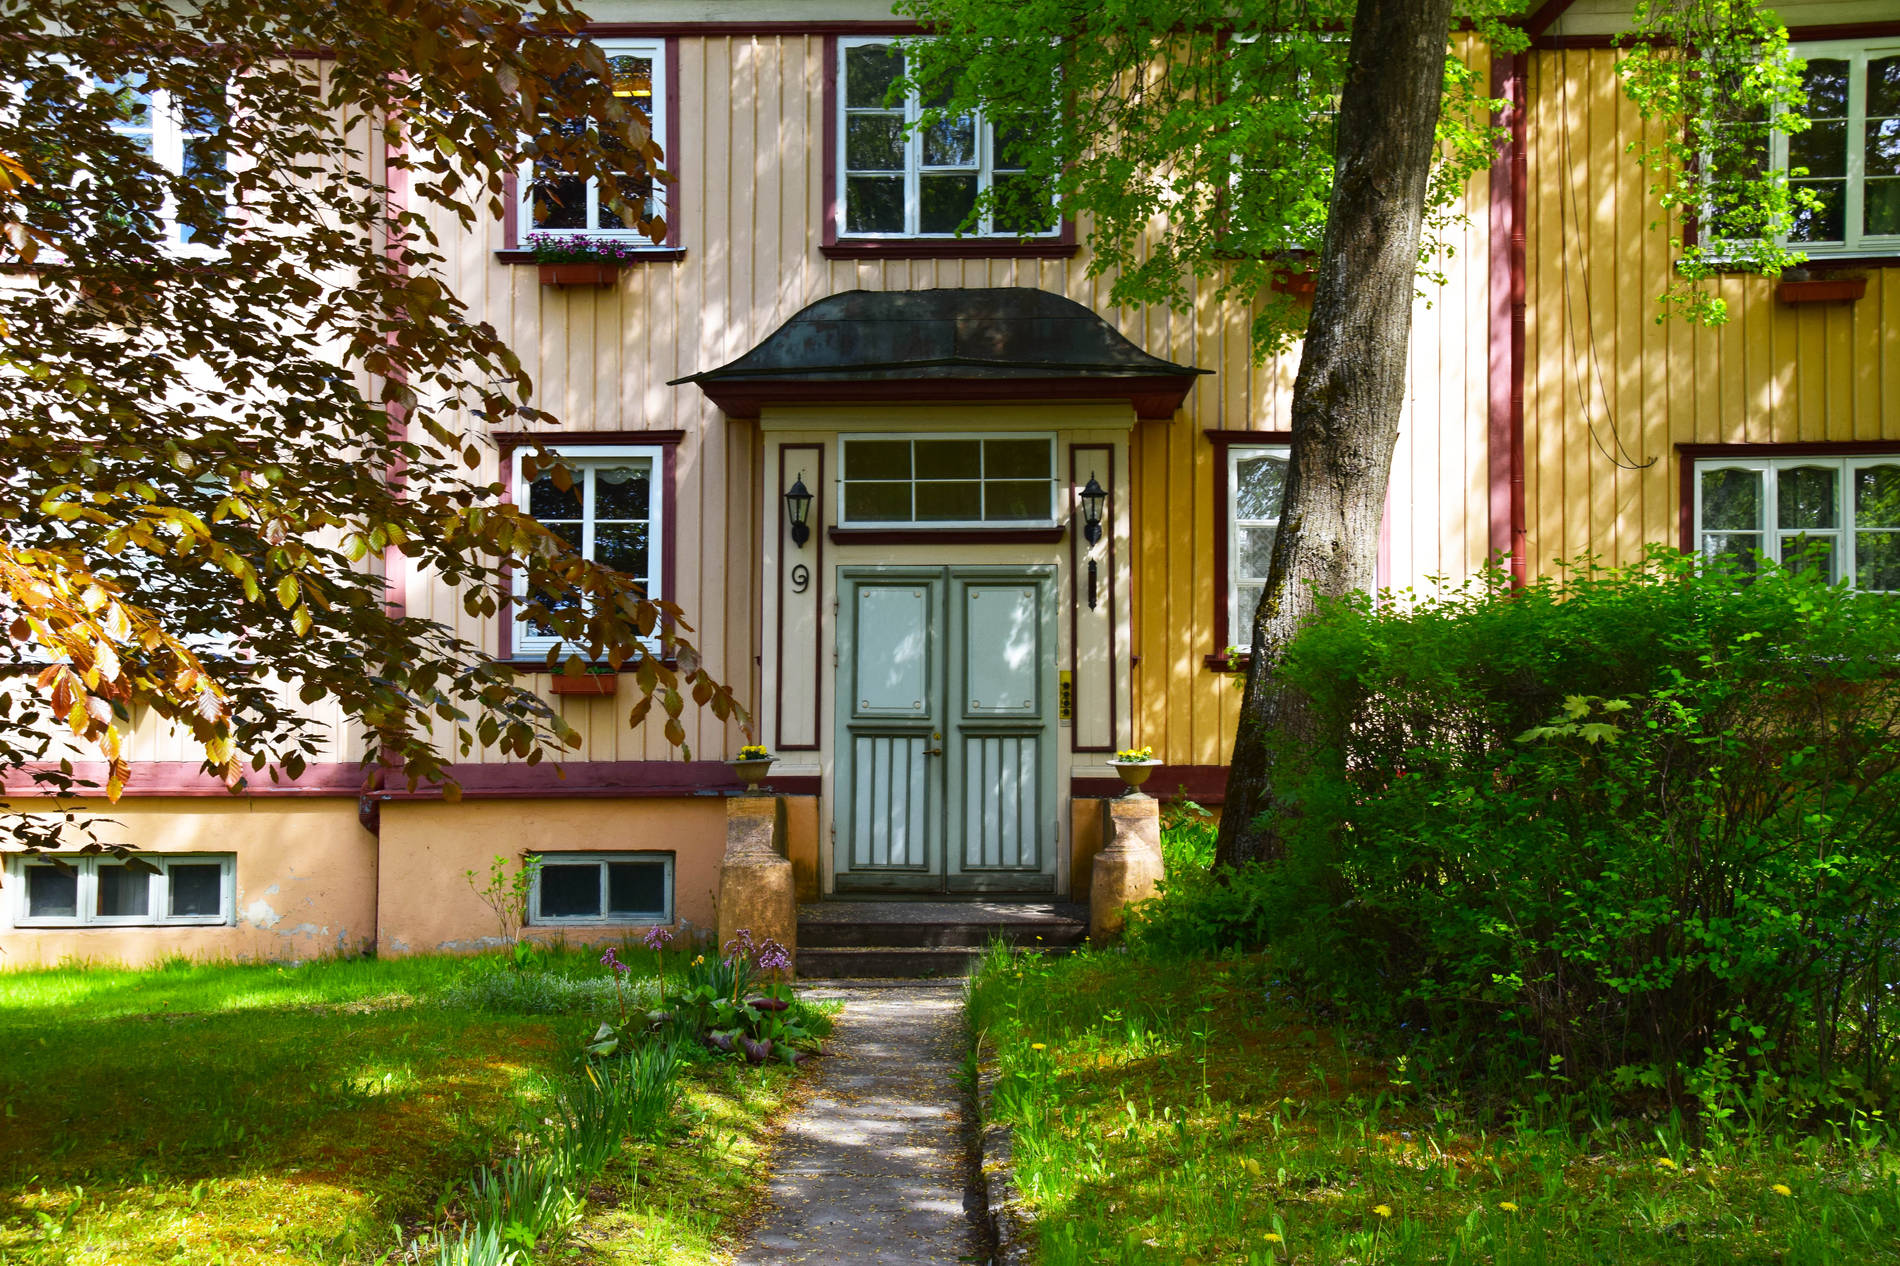 A wooden house in the Nõmme area of Tallinn, Estonia.